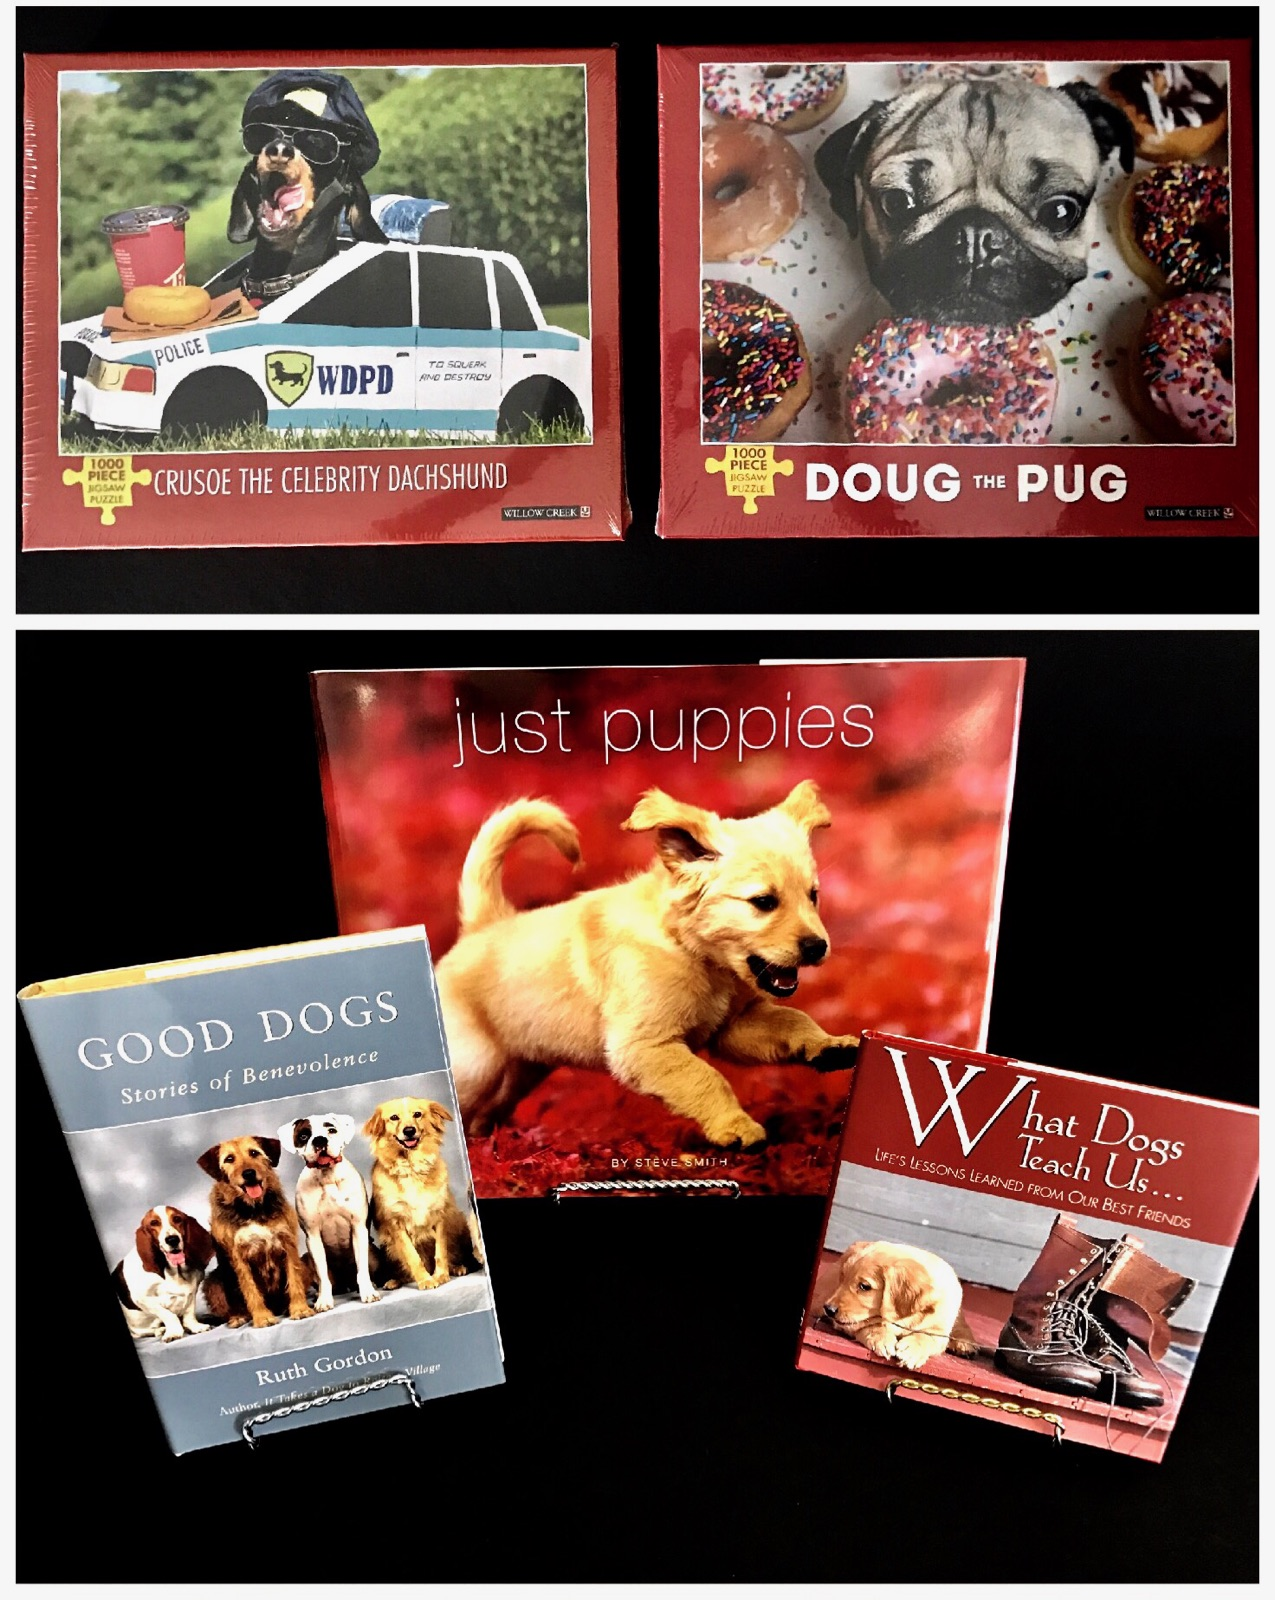 Puzzles& Books - You can never go wrong with an exciting dog book or an appealing dog puzzle! Keep everyone amused with a variety of dog themed entertainment! Shop your favorites today!